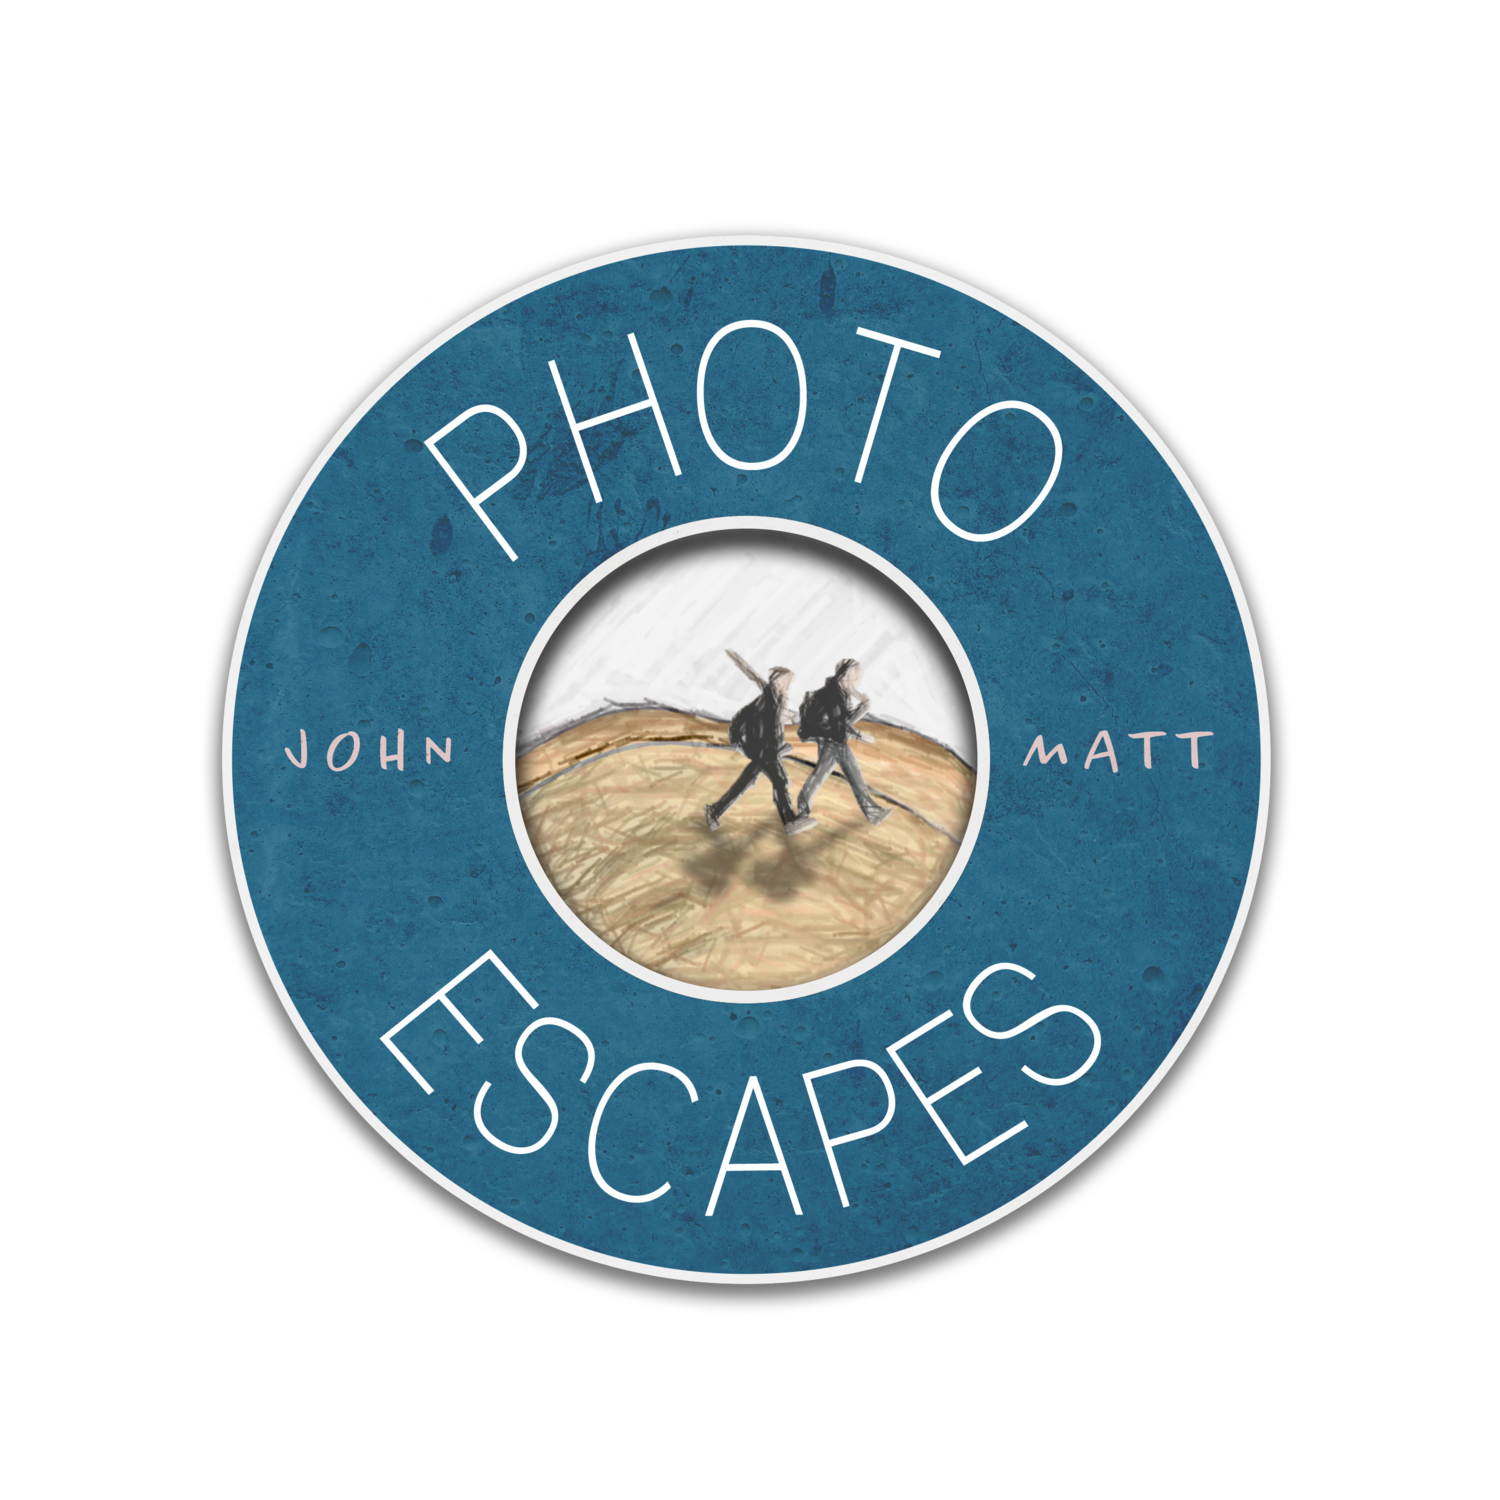 PHOTO ESCAPES PRODUCTIONS